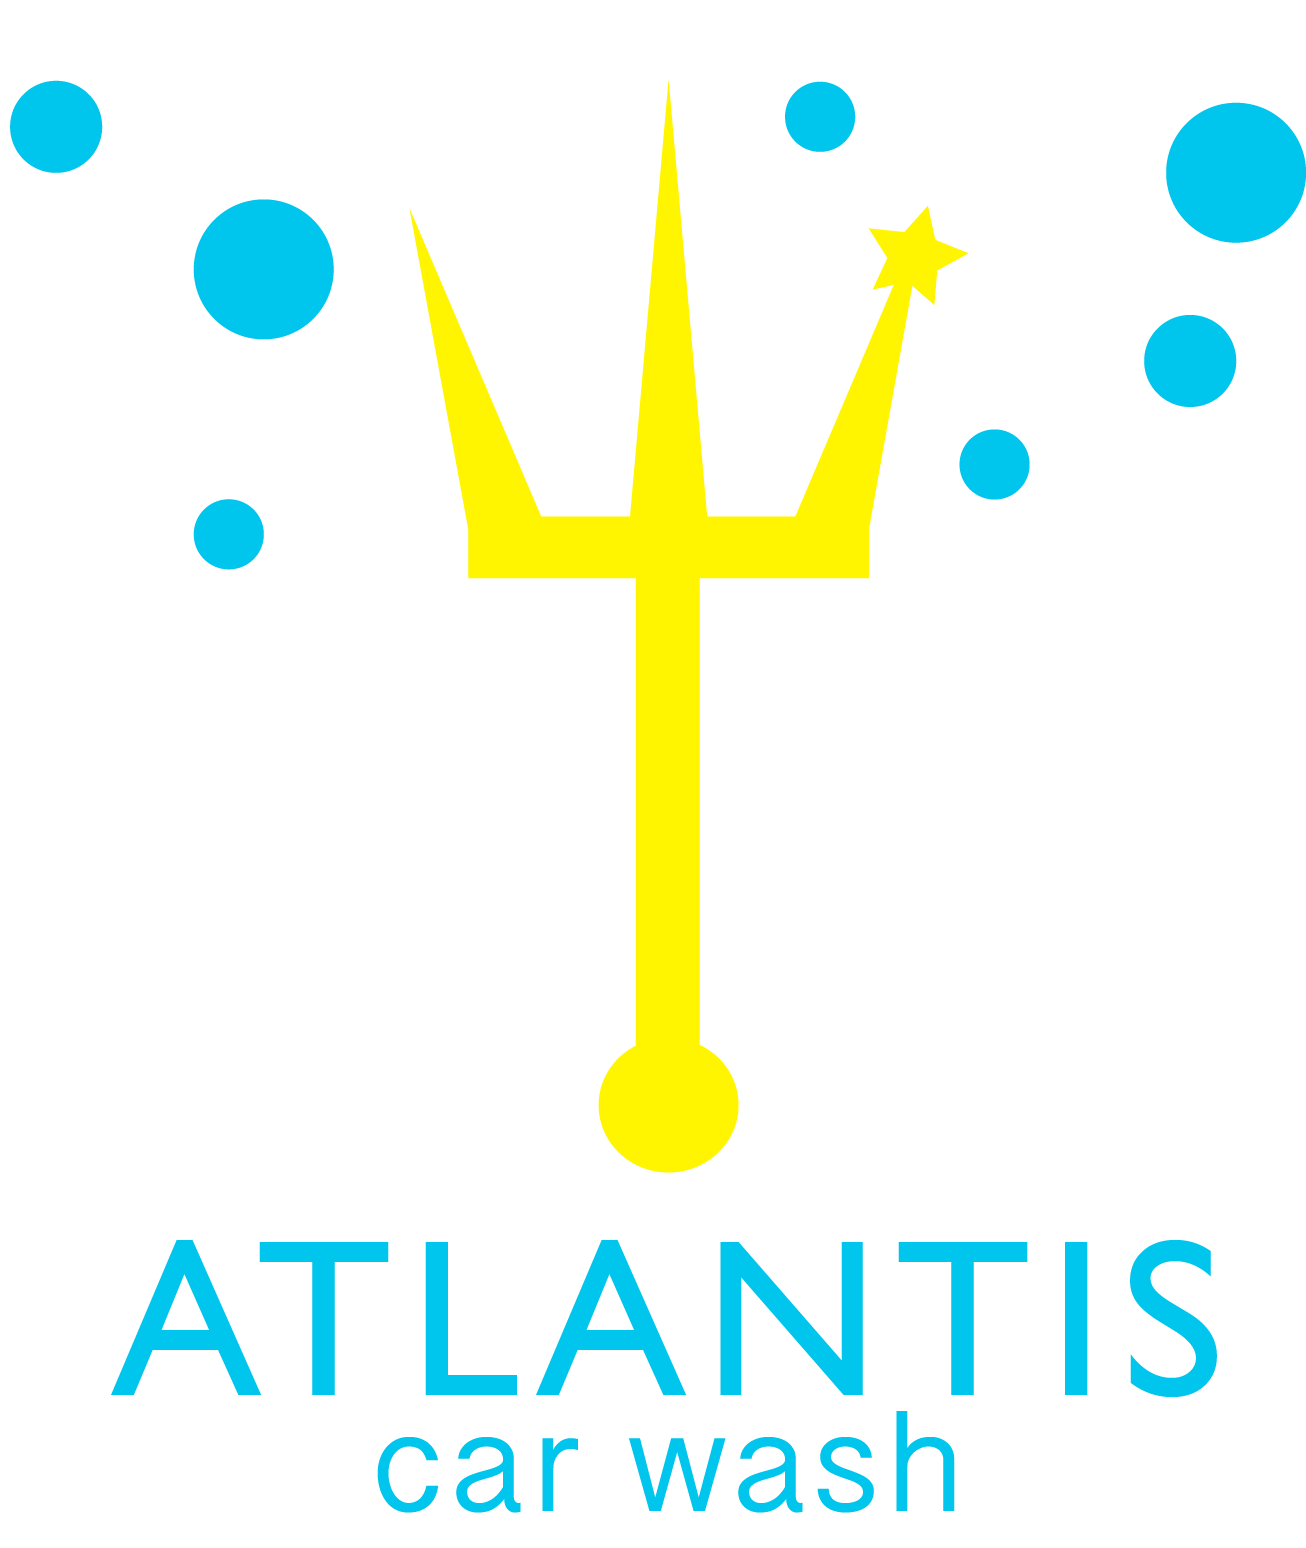 Atlantis Car Wash logo (1).png